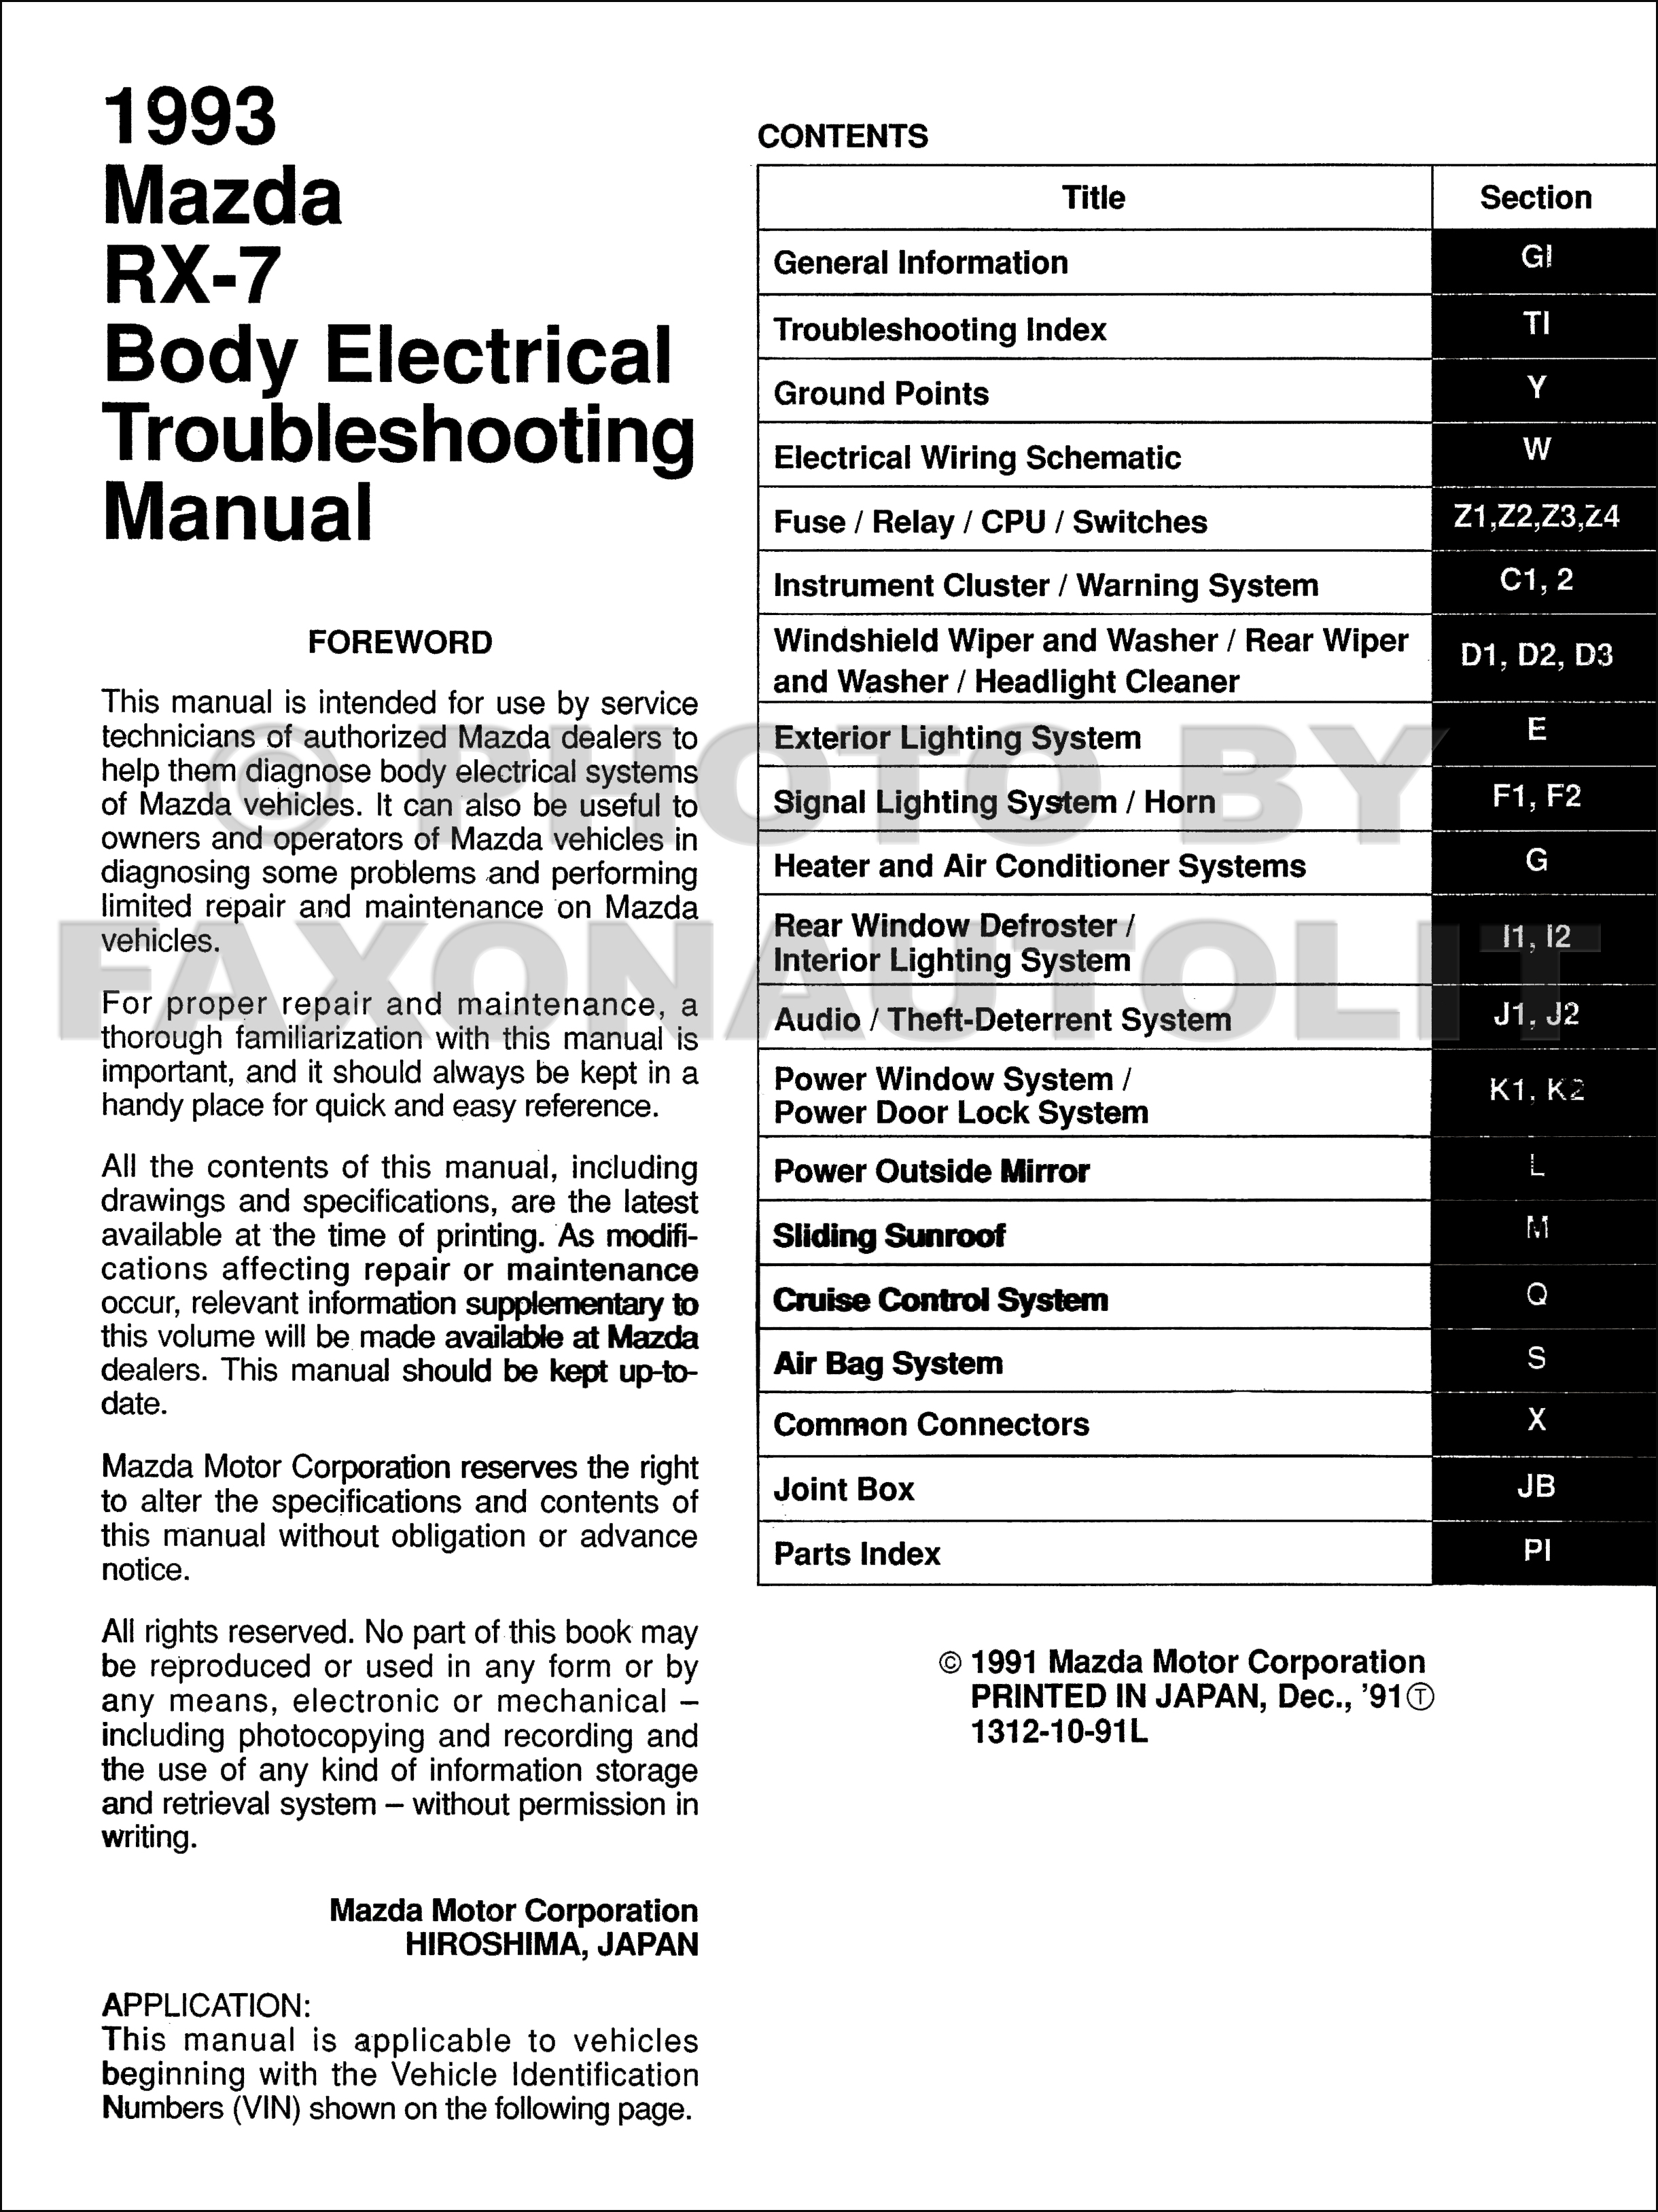 1993 Mazda Rx 7 Body Electrical Troubleshooting Manual Original Wiring Schematic Click On Thumbnail To Zoom